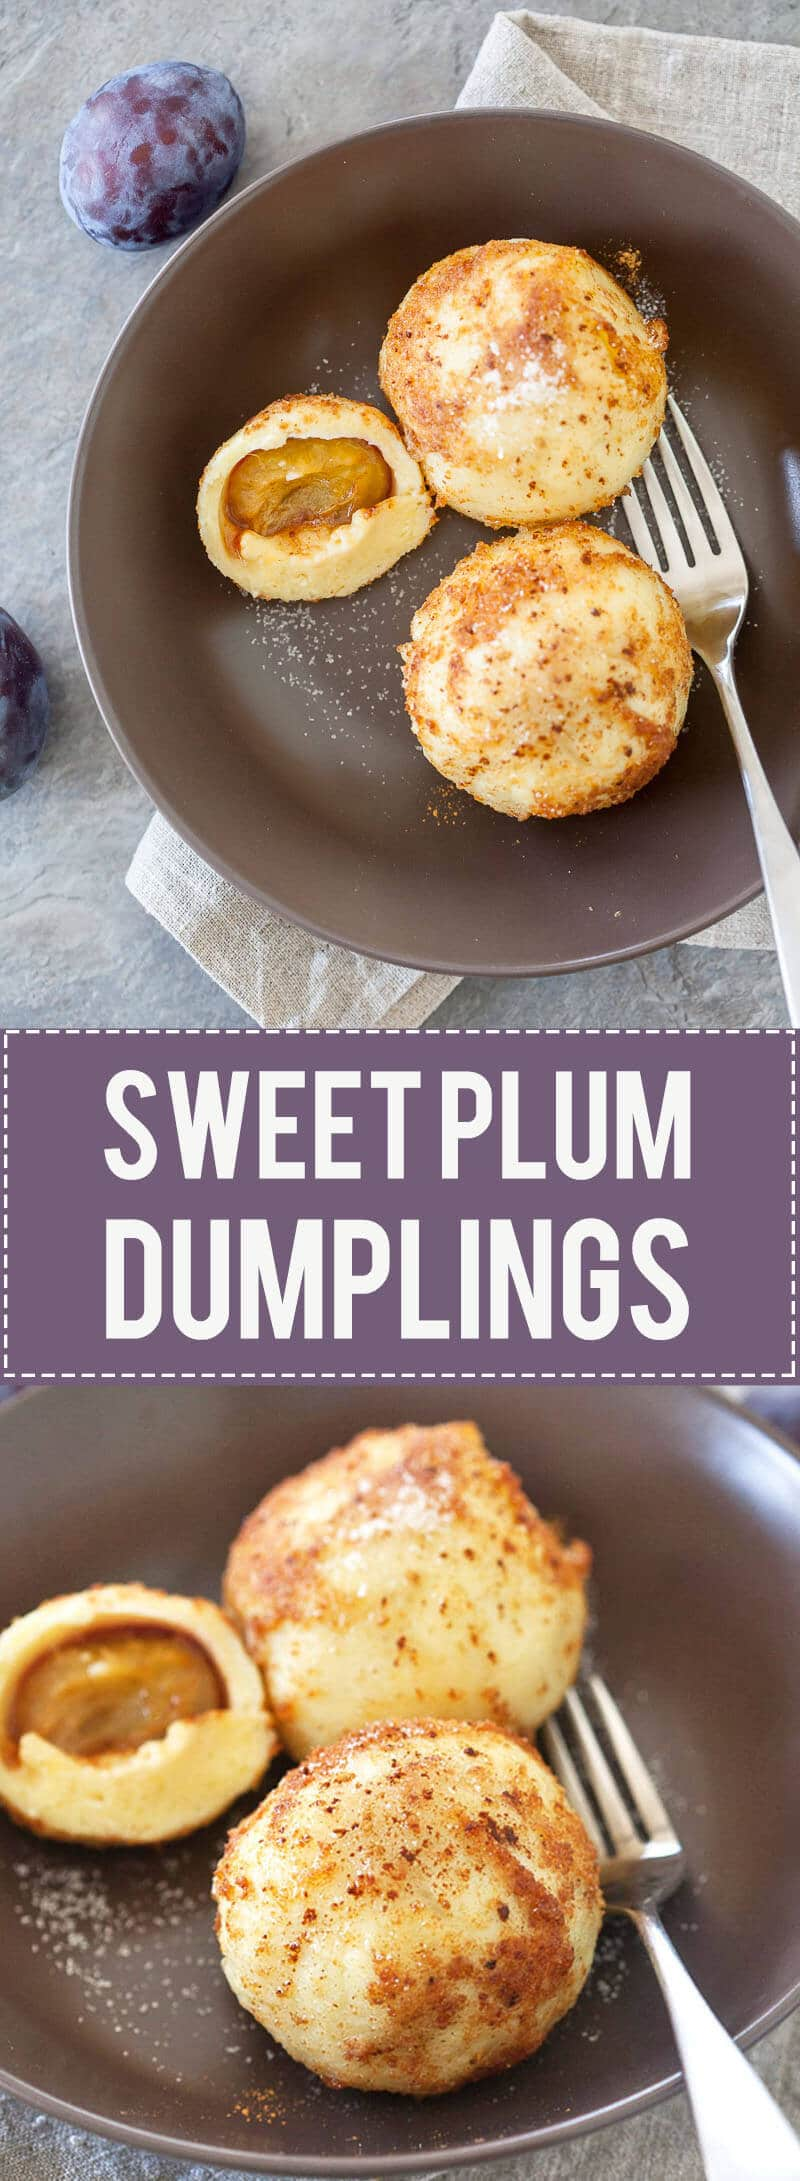 Plums come in all shapes and sizes, but our fave is the Damsons with their rich flavor. We turned them into these Delicious Sweet Dumplings with Plums.